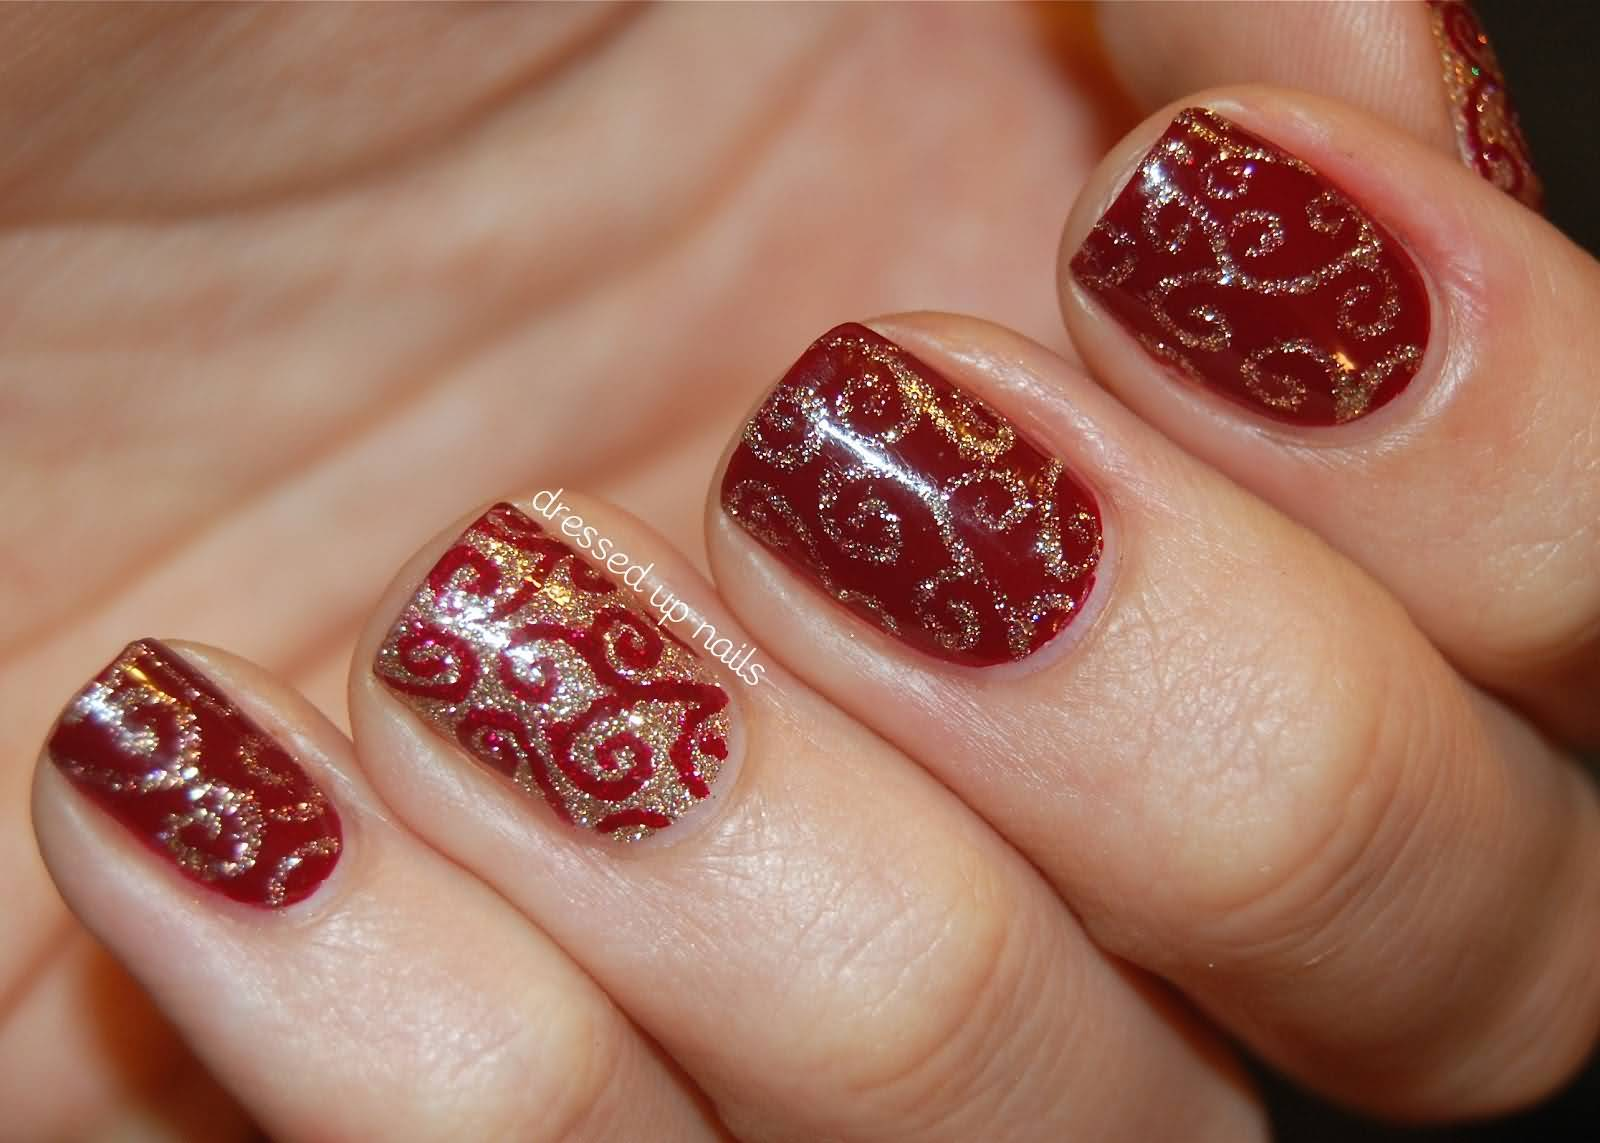 Red Nails With Gold Glitter Gel Swirls Design Nail Art